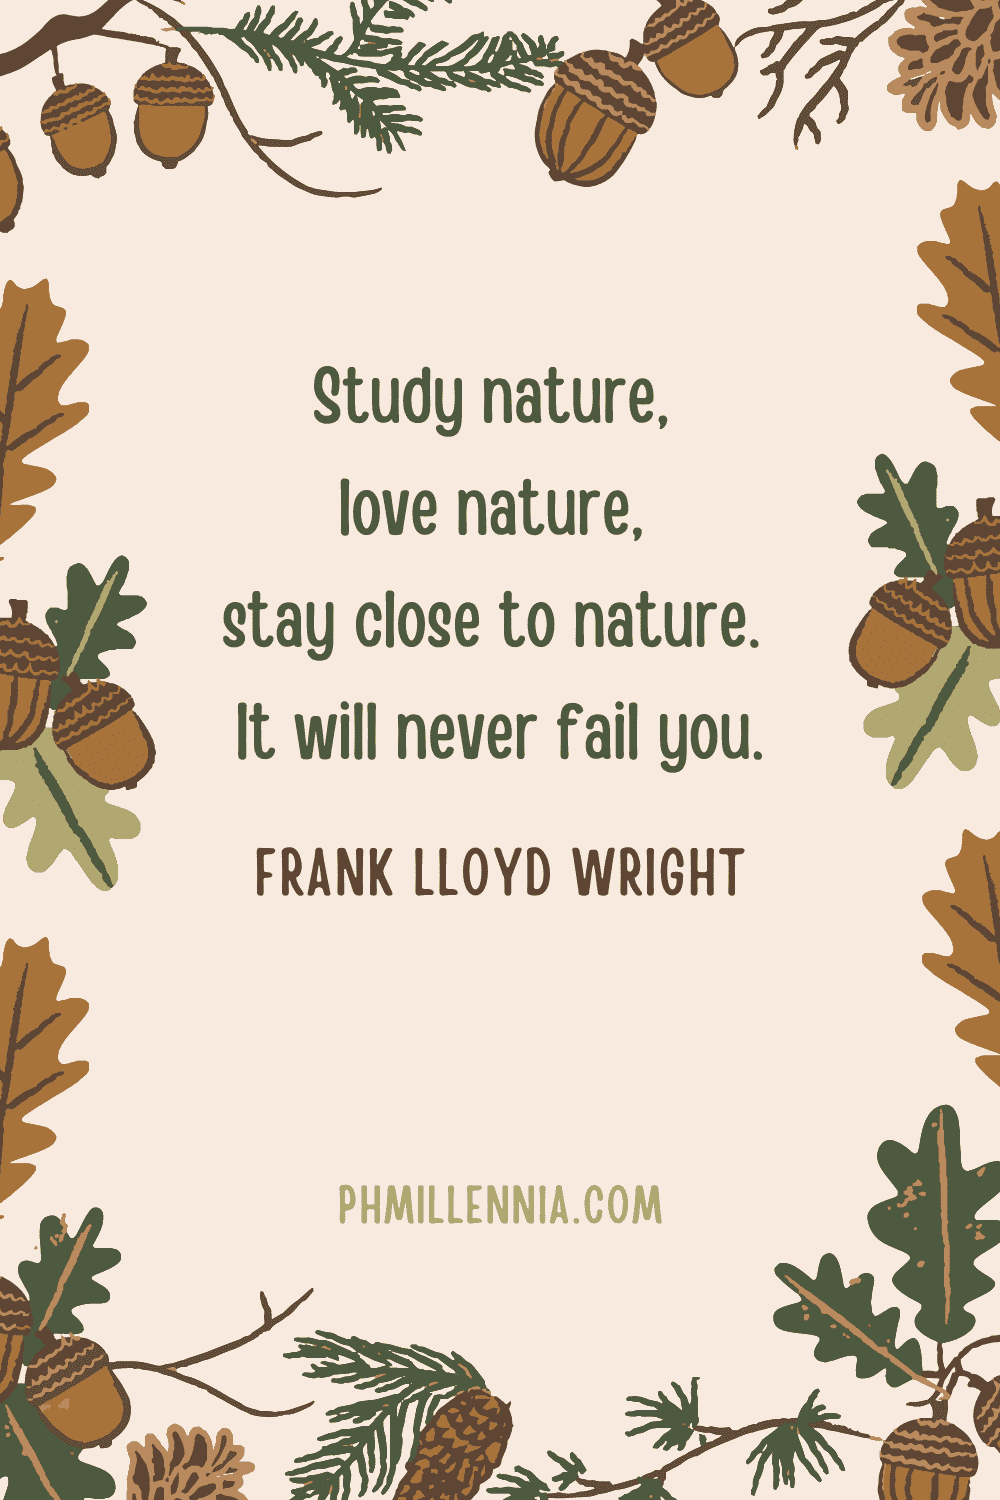 A Pinterest Pin for the article '199 Quotes on Nature to Inspire a Lifelong Love for the Great Outdoors' on phmillennia.com